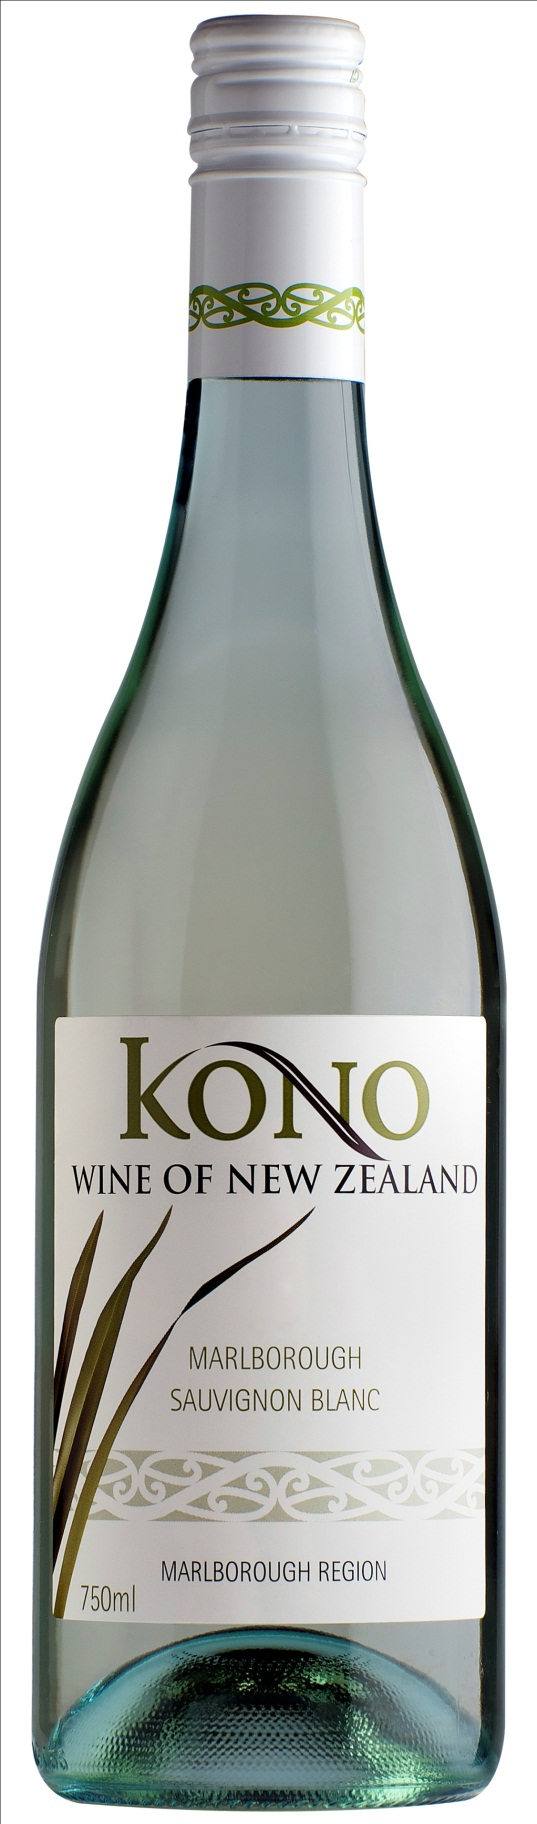 Kono Wine. Got this at Trader Joe's. Loved it!!